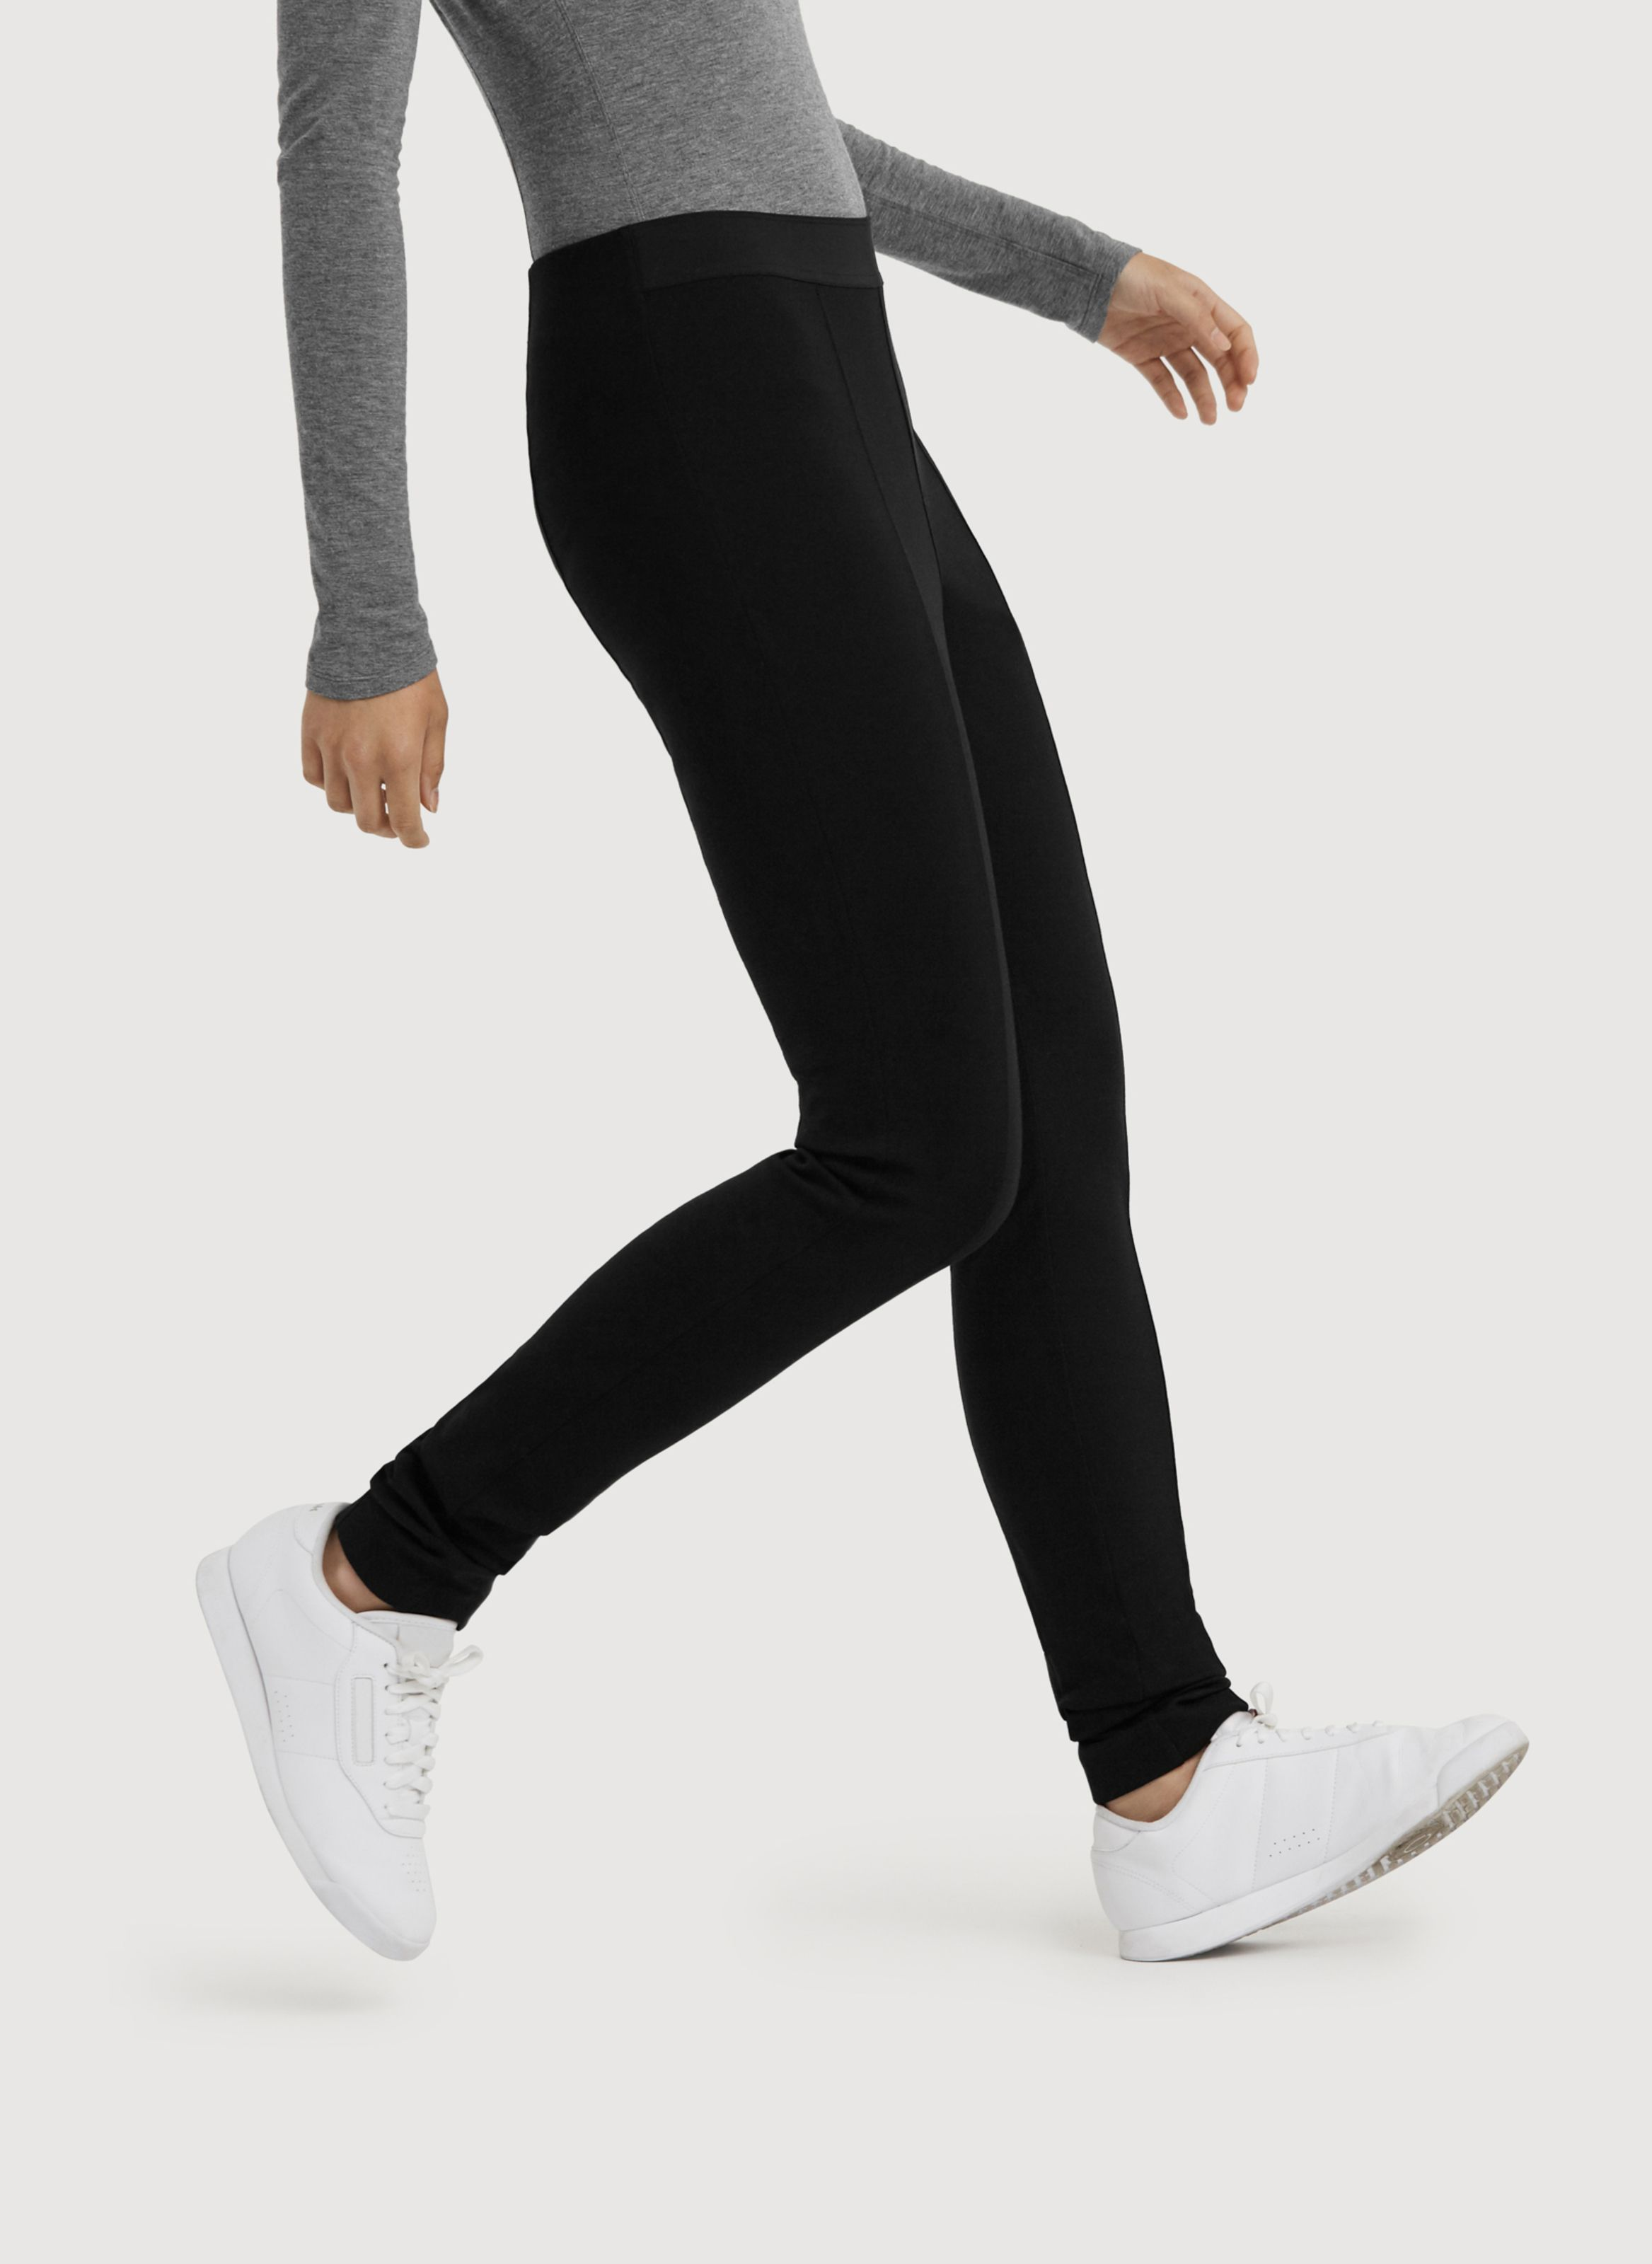 Pencil Me In Legging, $198 CAD, Kit and Ace